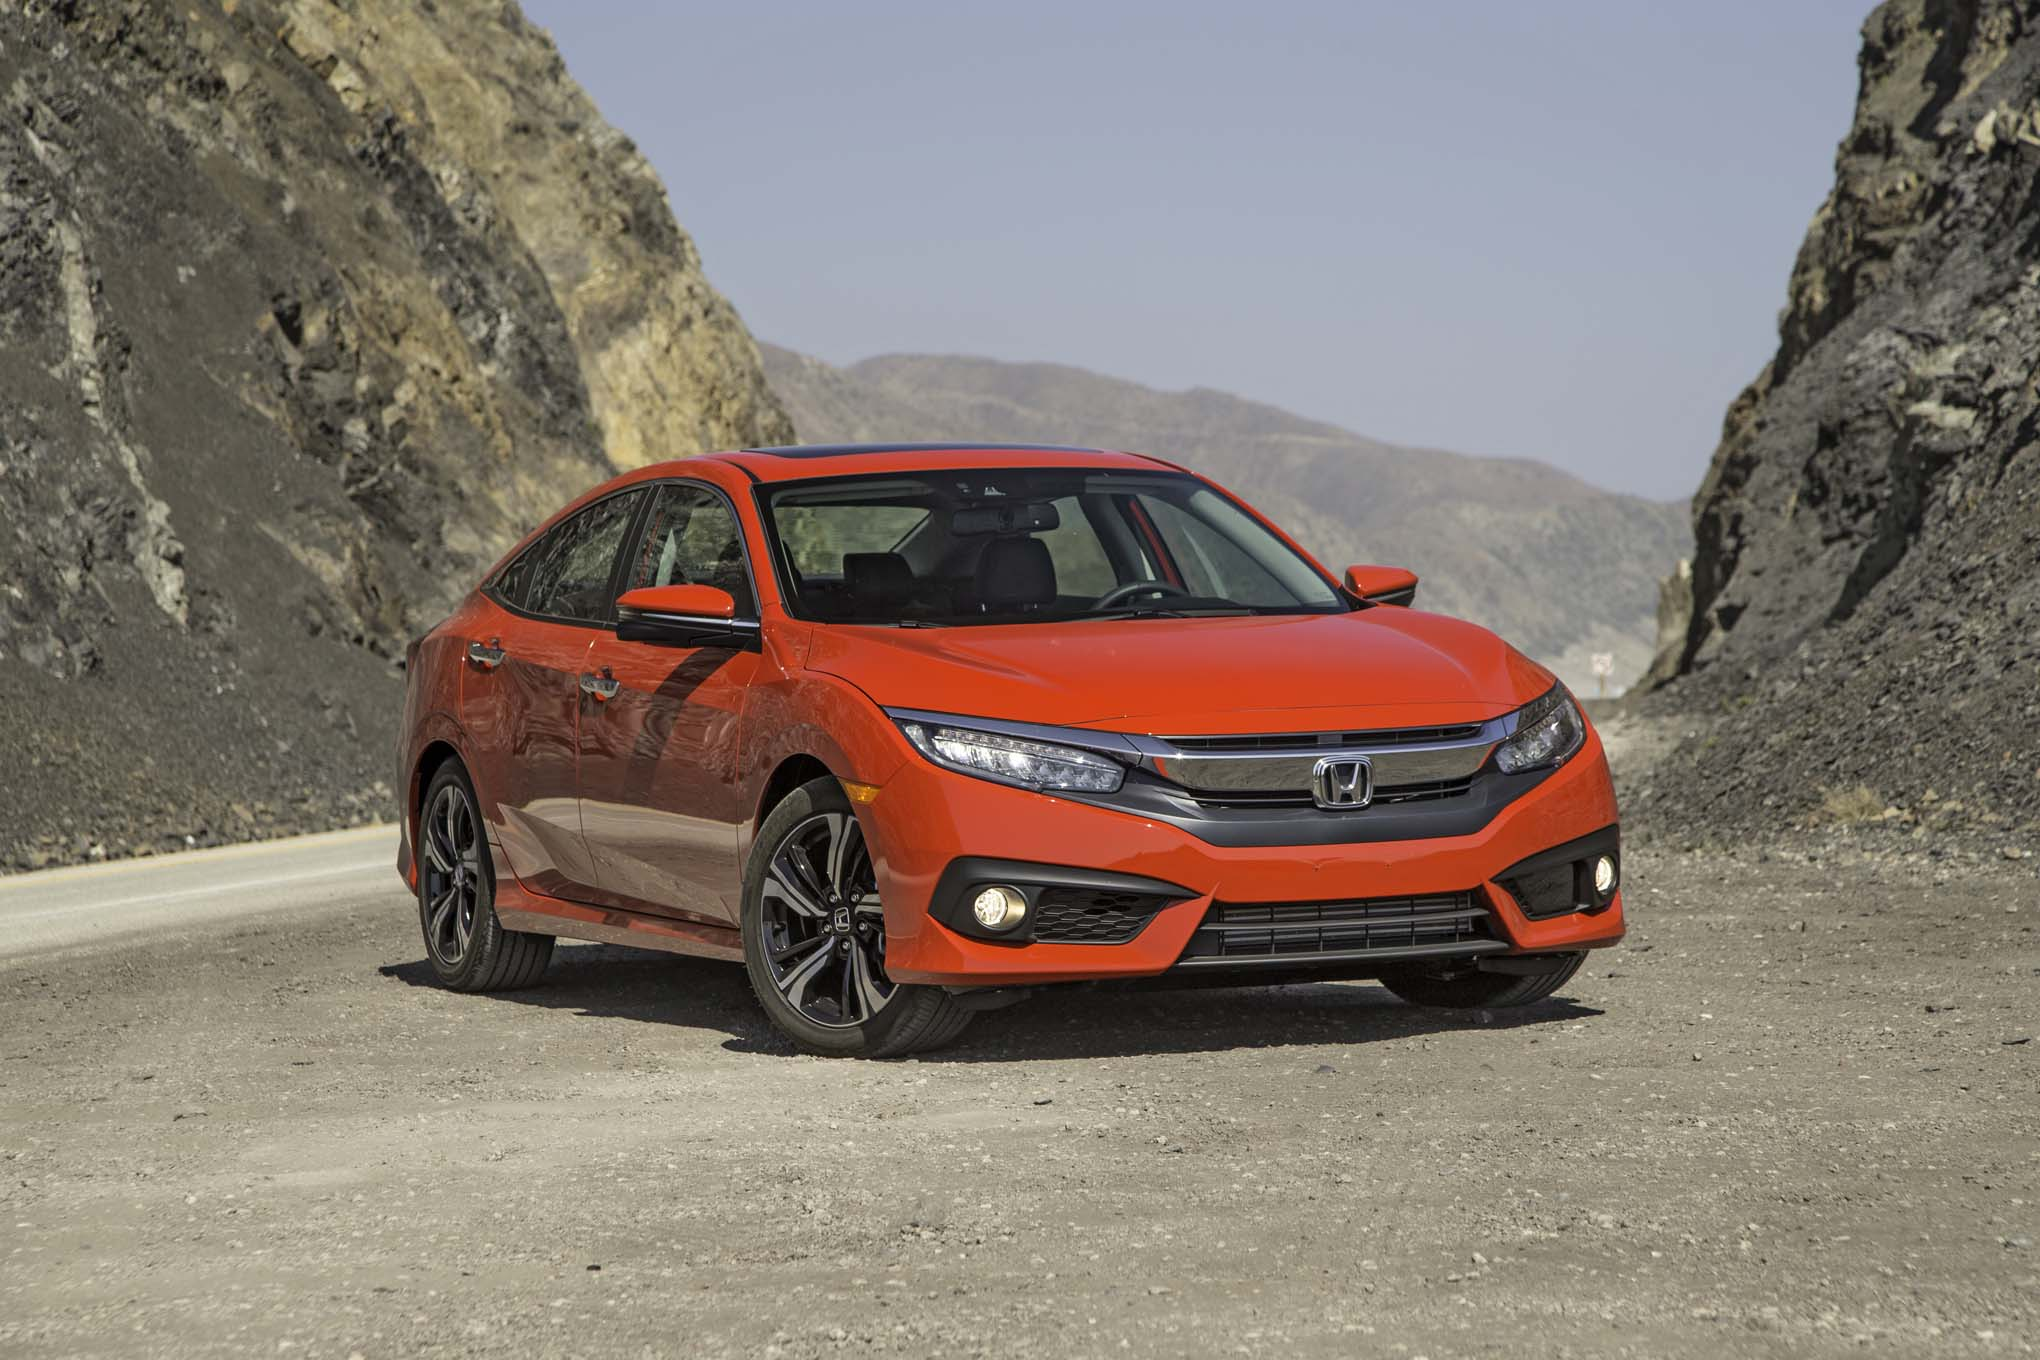 NEXT HONDA CIVIC TURNS ON THE STYLE News Image